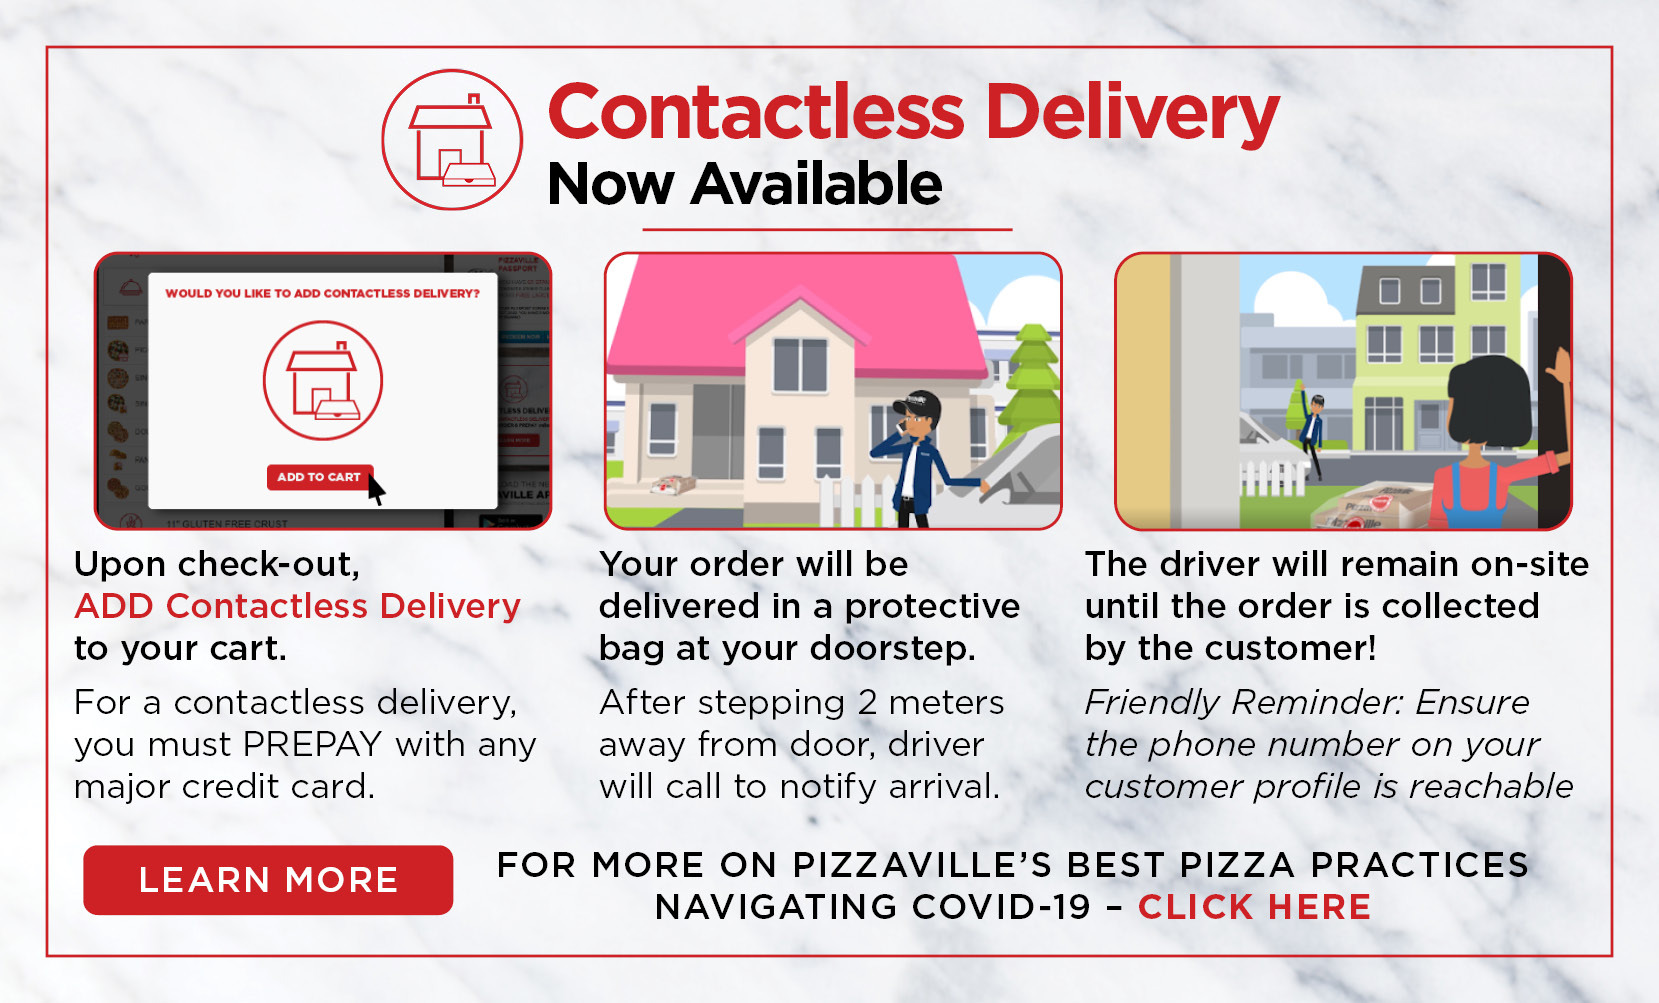 contactless delivery information